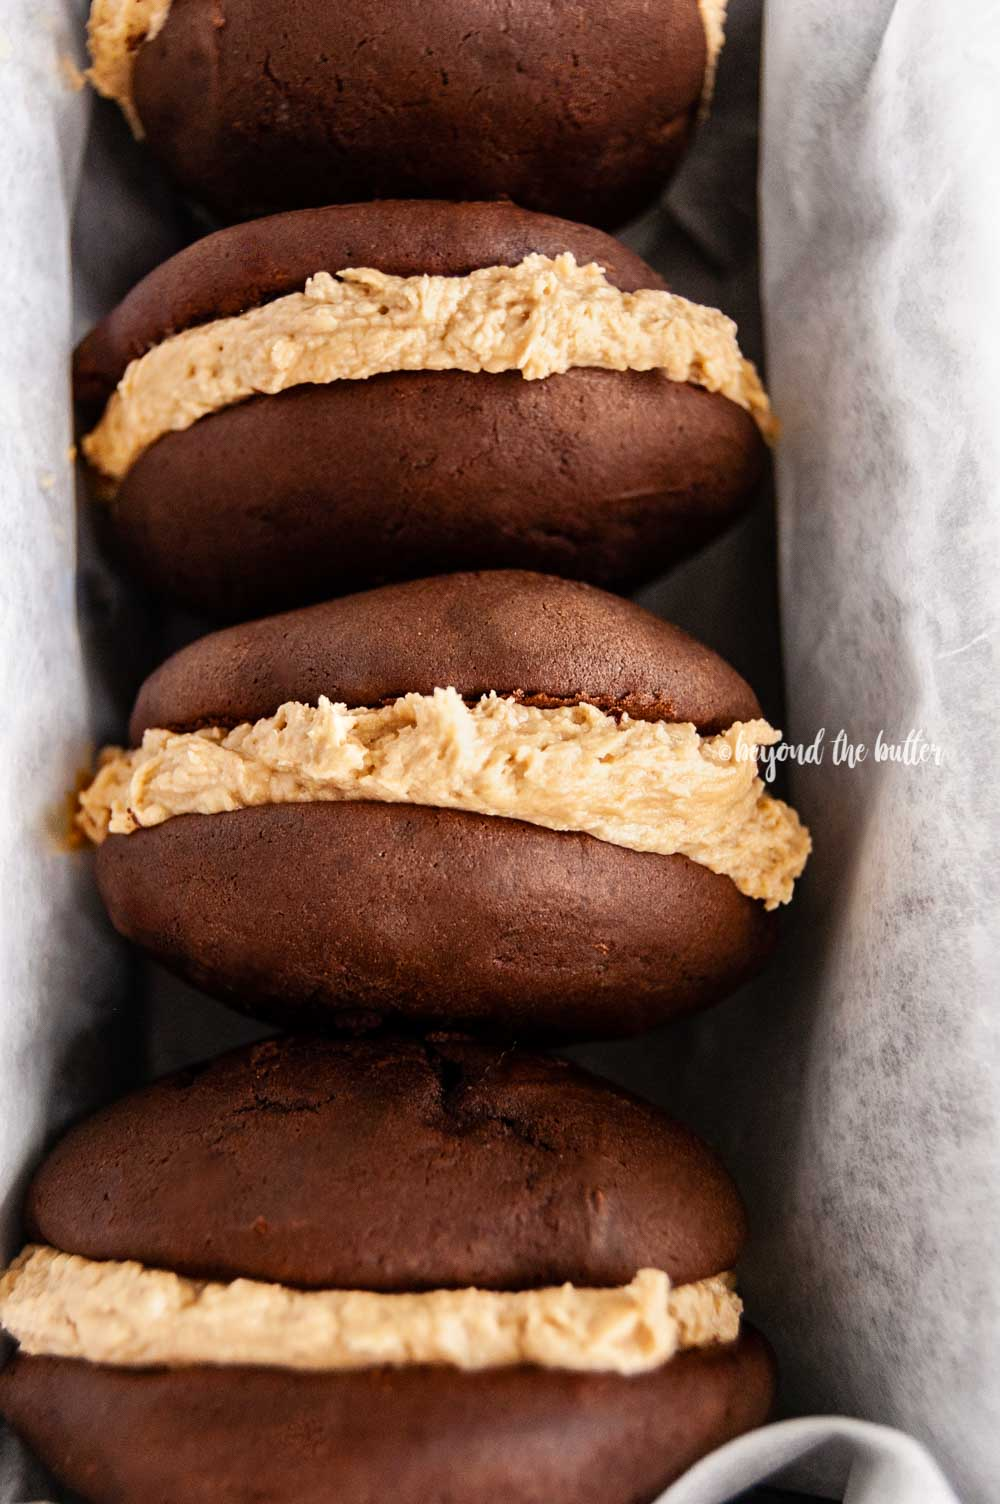 Closeup overhead image of chocolate peanut butter whoopie pies stacked in a parchment lined baking pan | All images © Beyond the Butter™